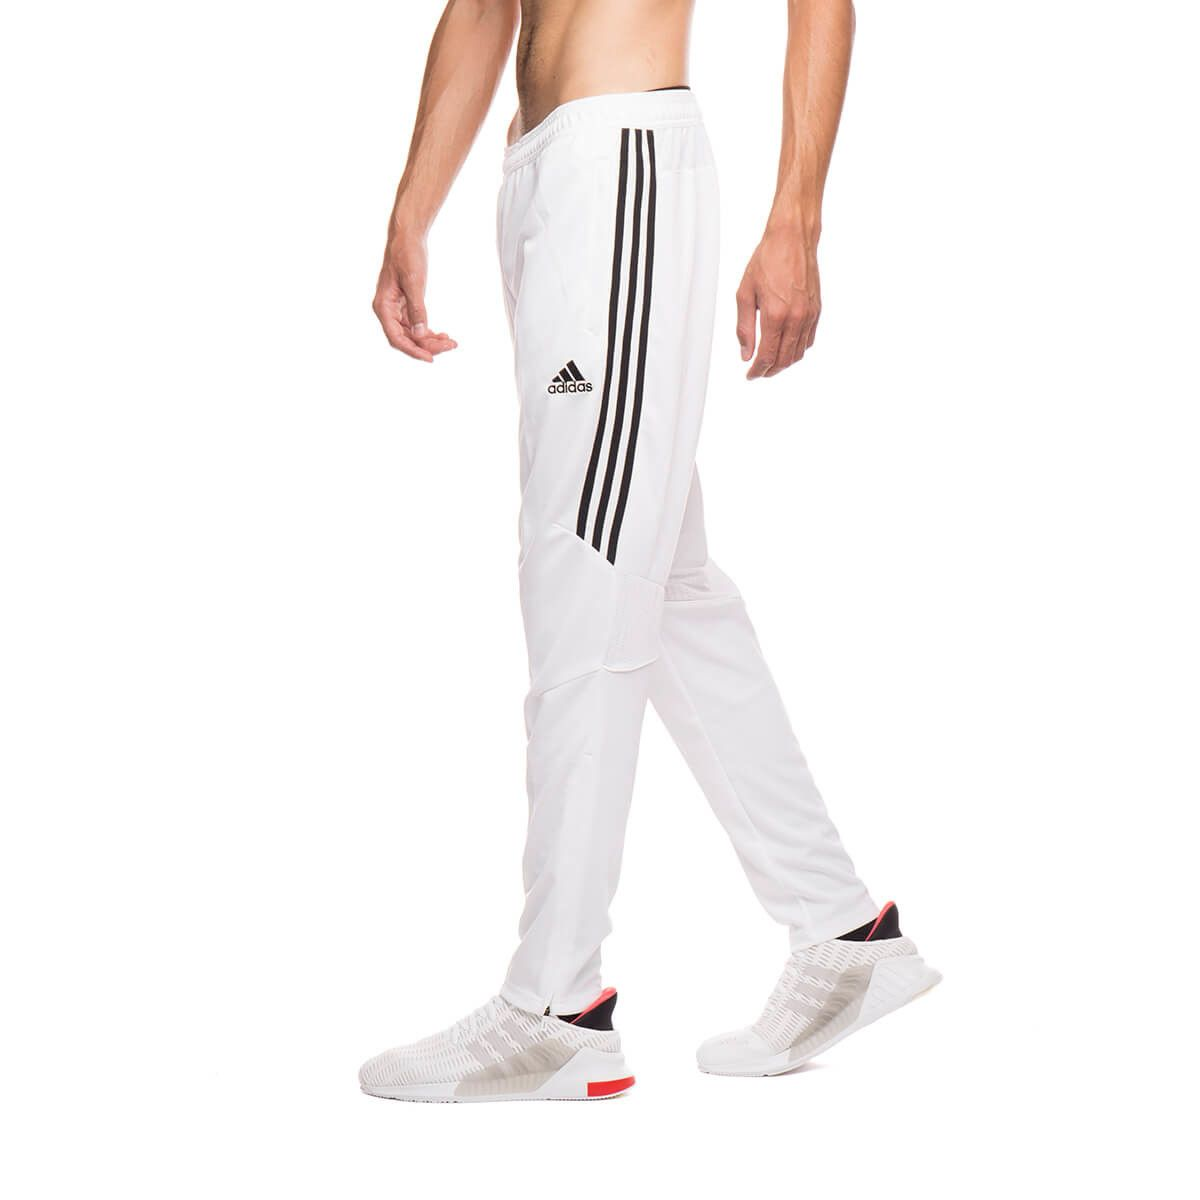 white adidas sweatpants